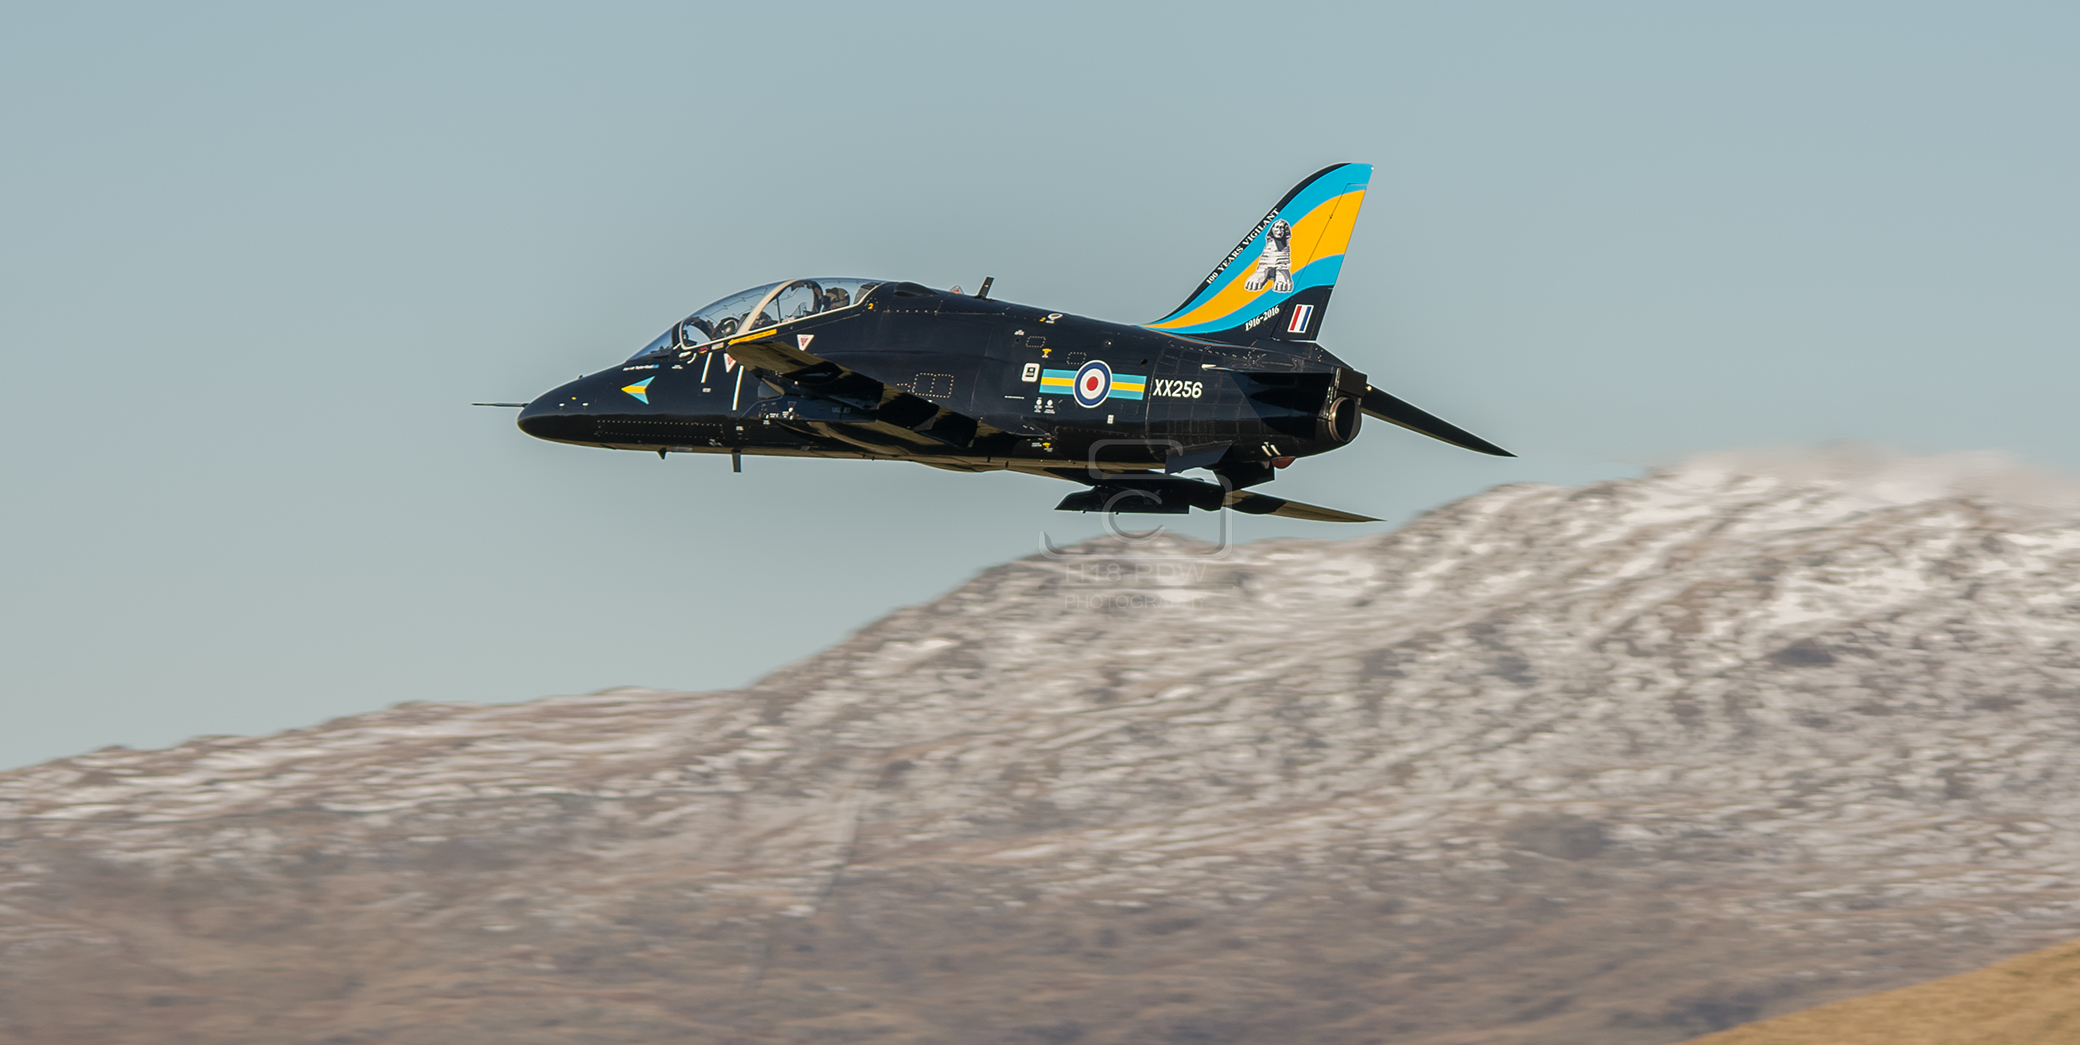 Hawk In The Mach Loop